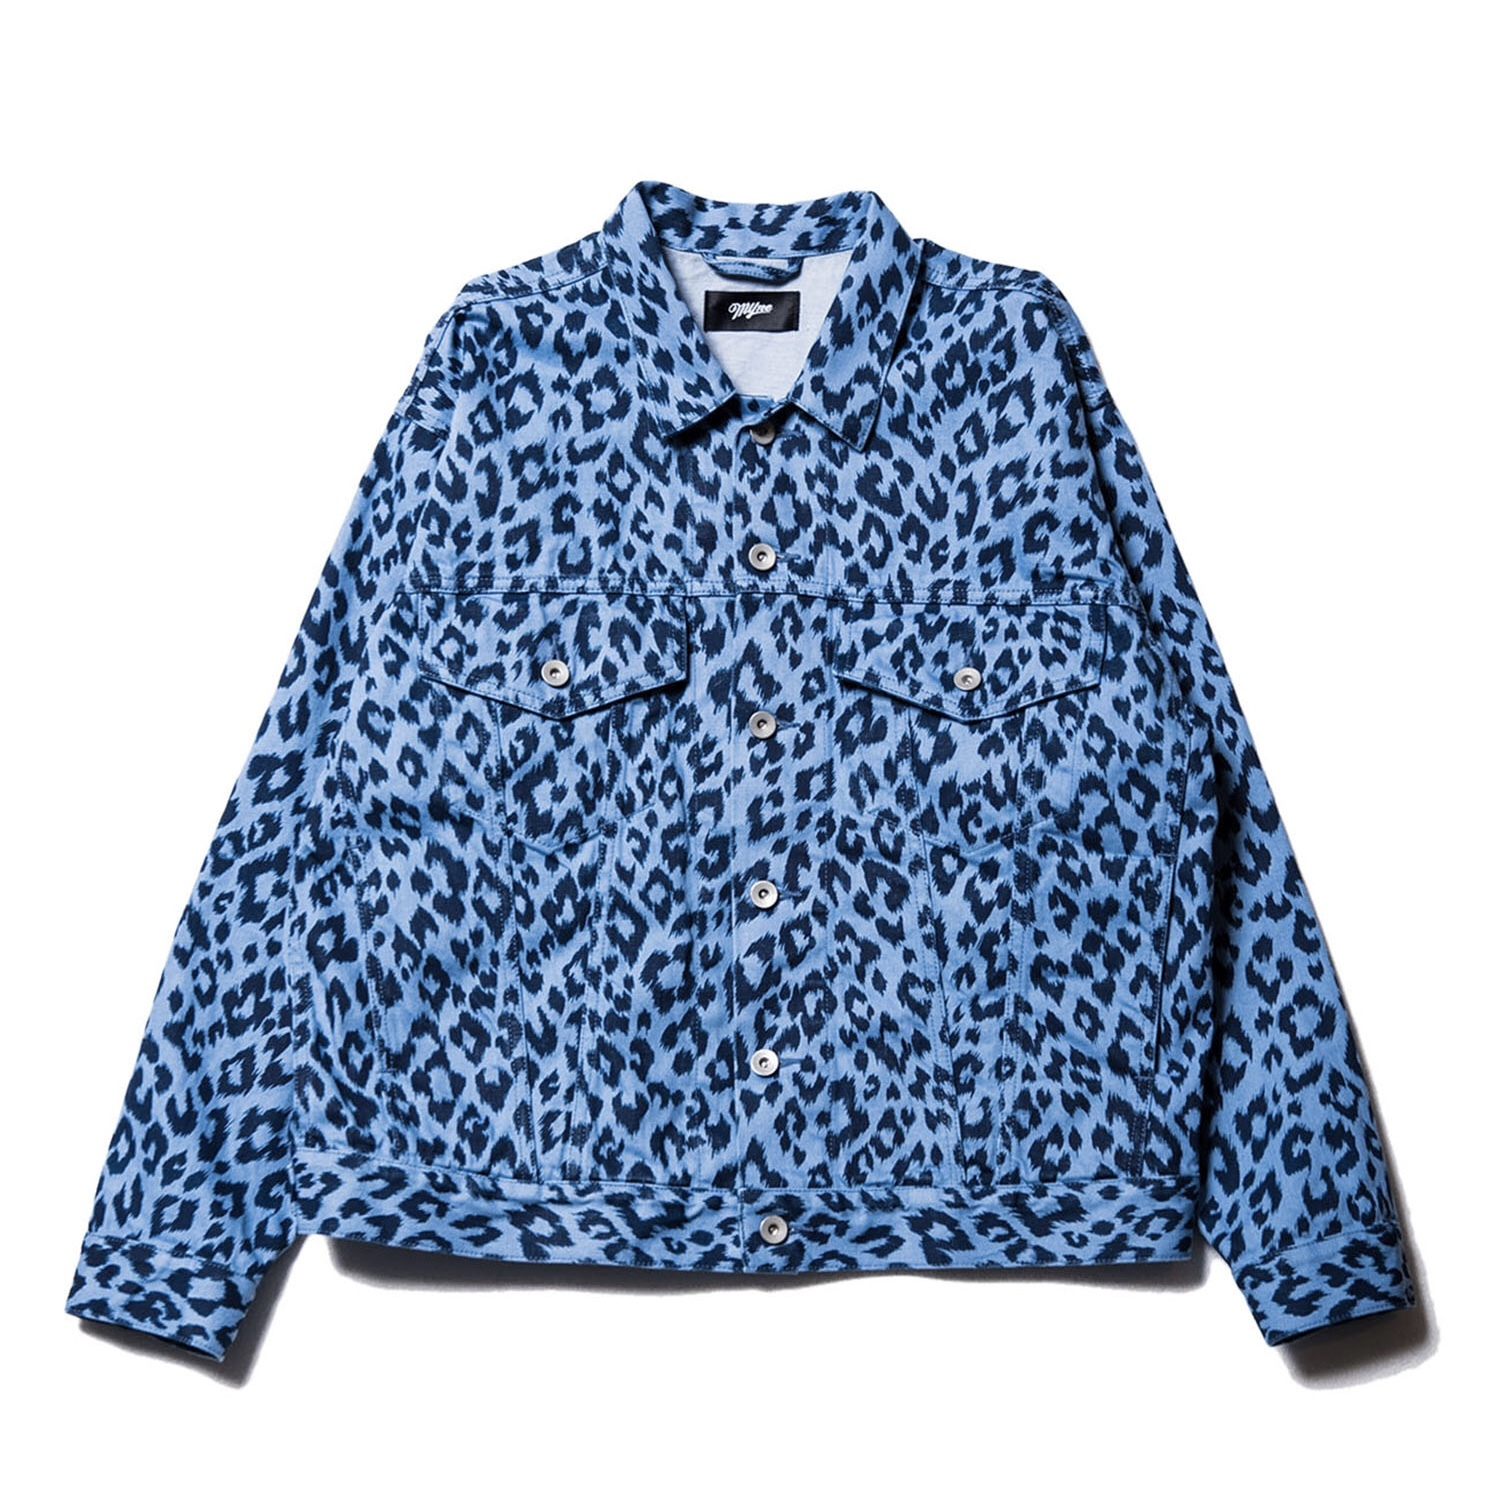 Leopard denim jacket / INDIGO - 画像1